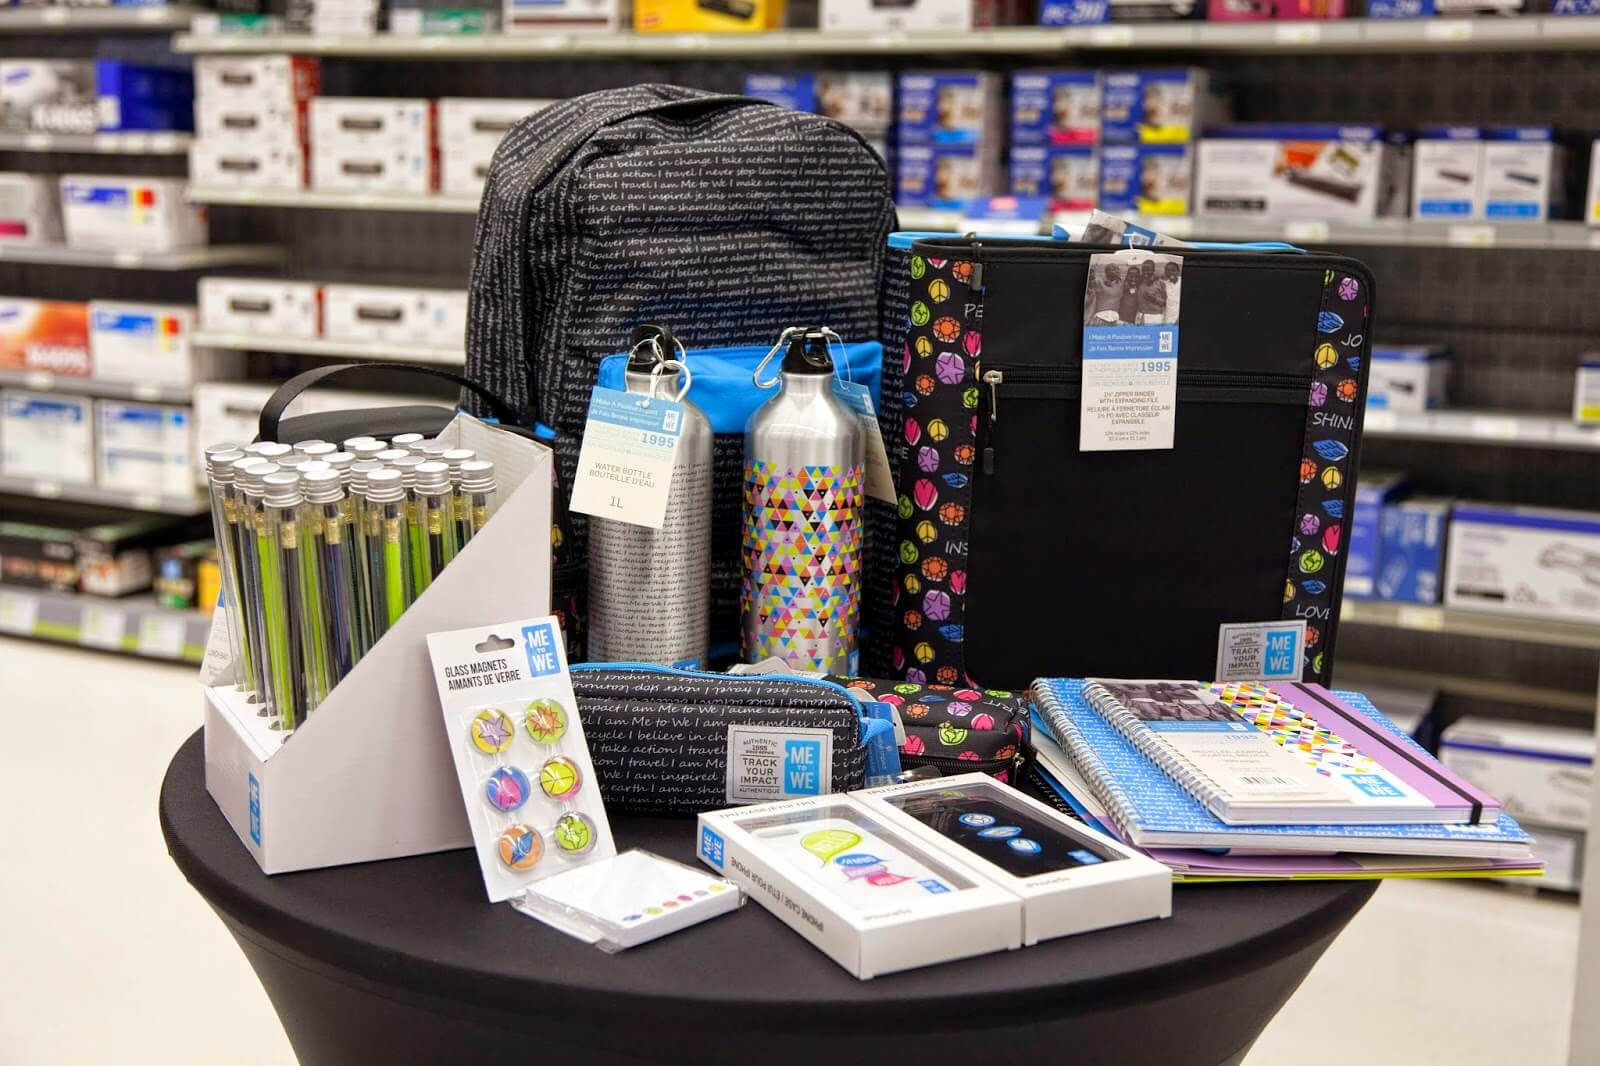 Discontinue regular school supplies with Eco-friendly items